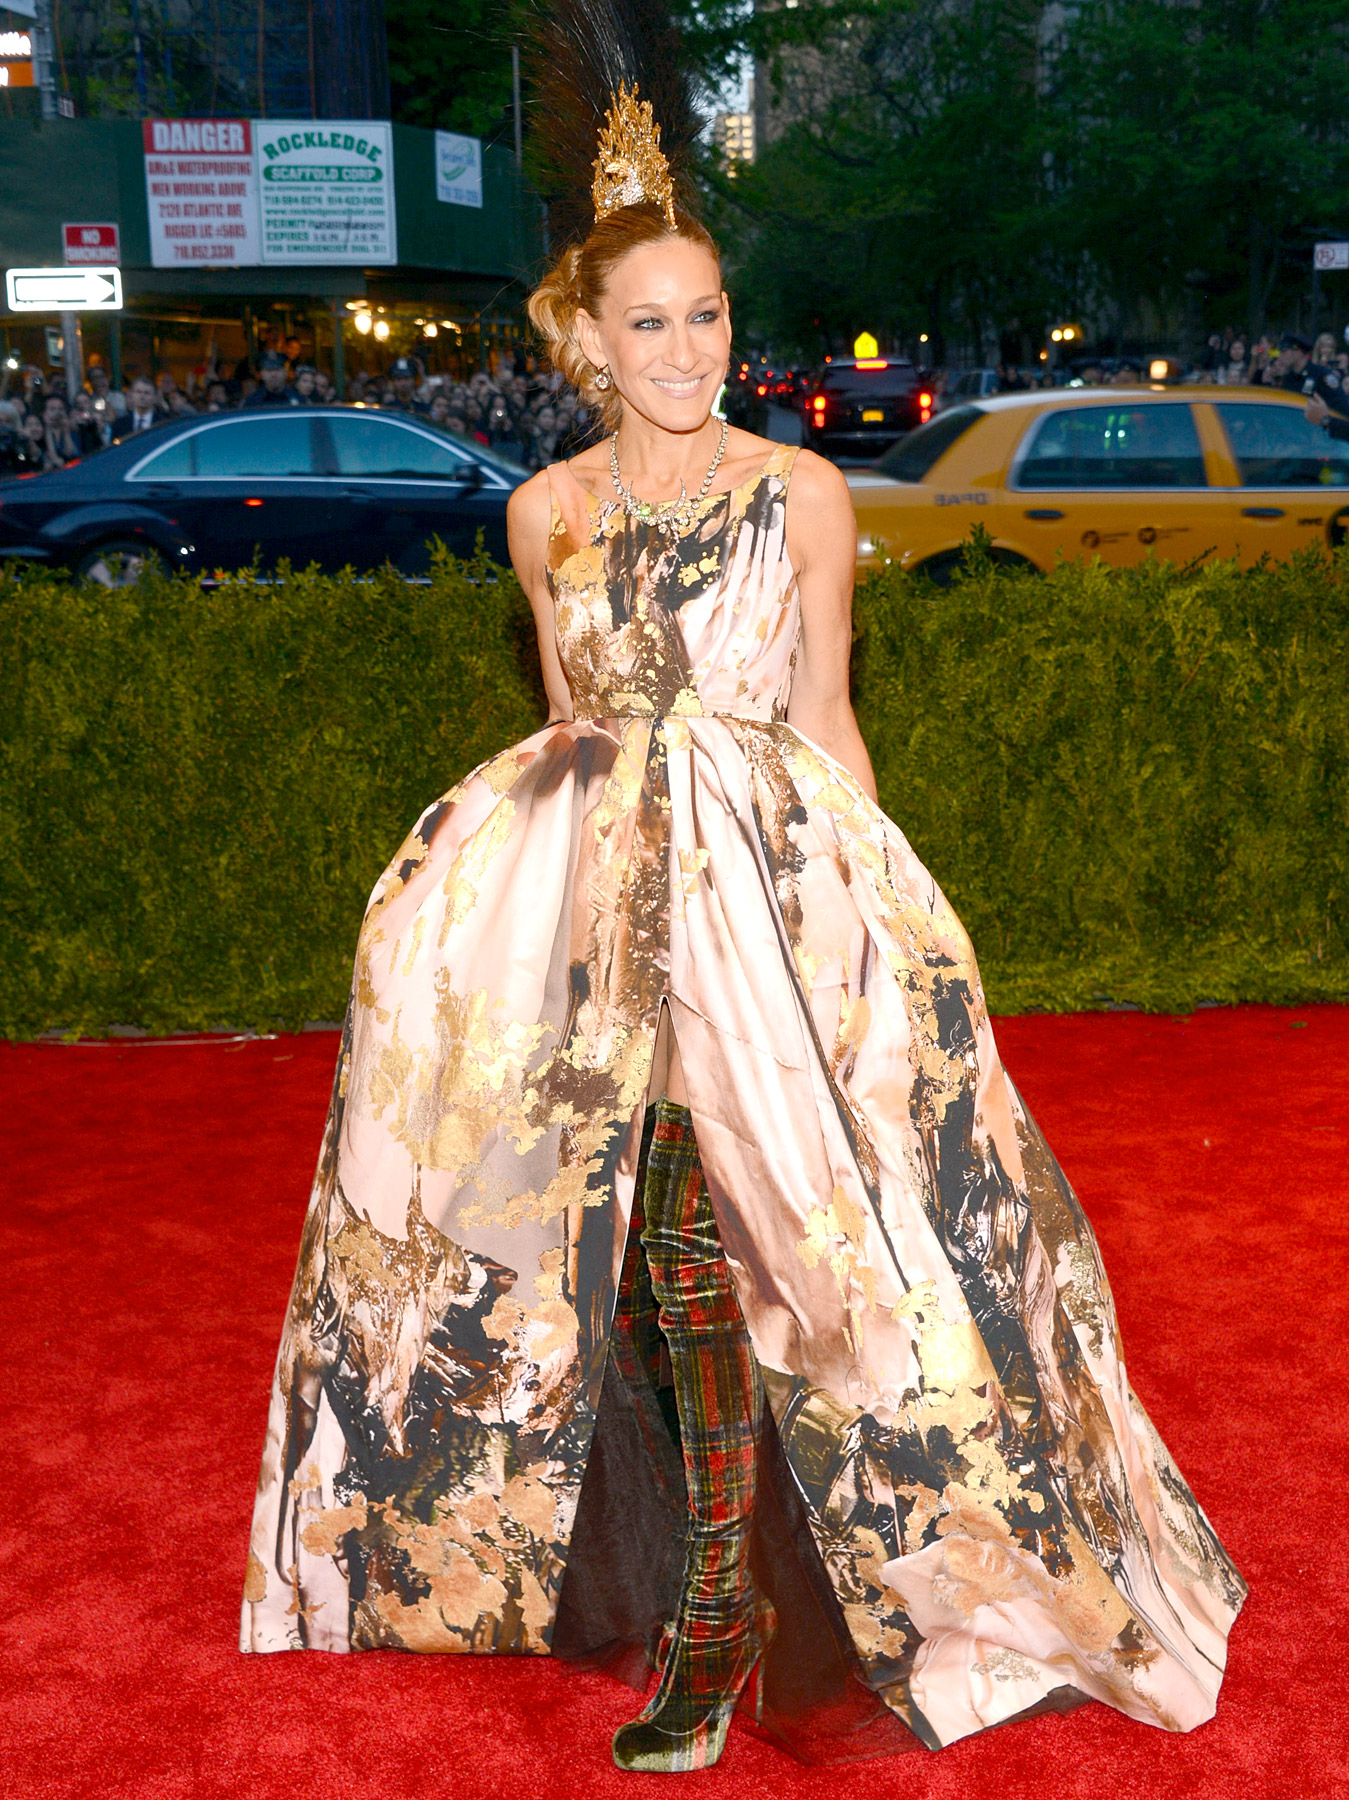 Though not everyone at the Met Gala on May 6, 2013, took the theme seriously, SJP showed she can make a statement and honor the event's theme in a punk-inspired ensemble. She wore a vibrantly printed Giles Deacon dress with Christian Louboutin plaid, thigh-high boots, but it was her Philip Treacy-designed mohawk headdress that received the most props as well as a pat from excited attendee Jennifer Lawrence .